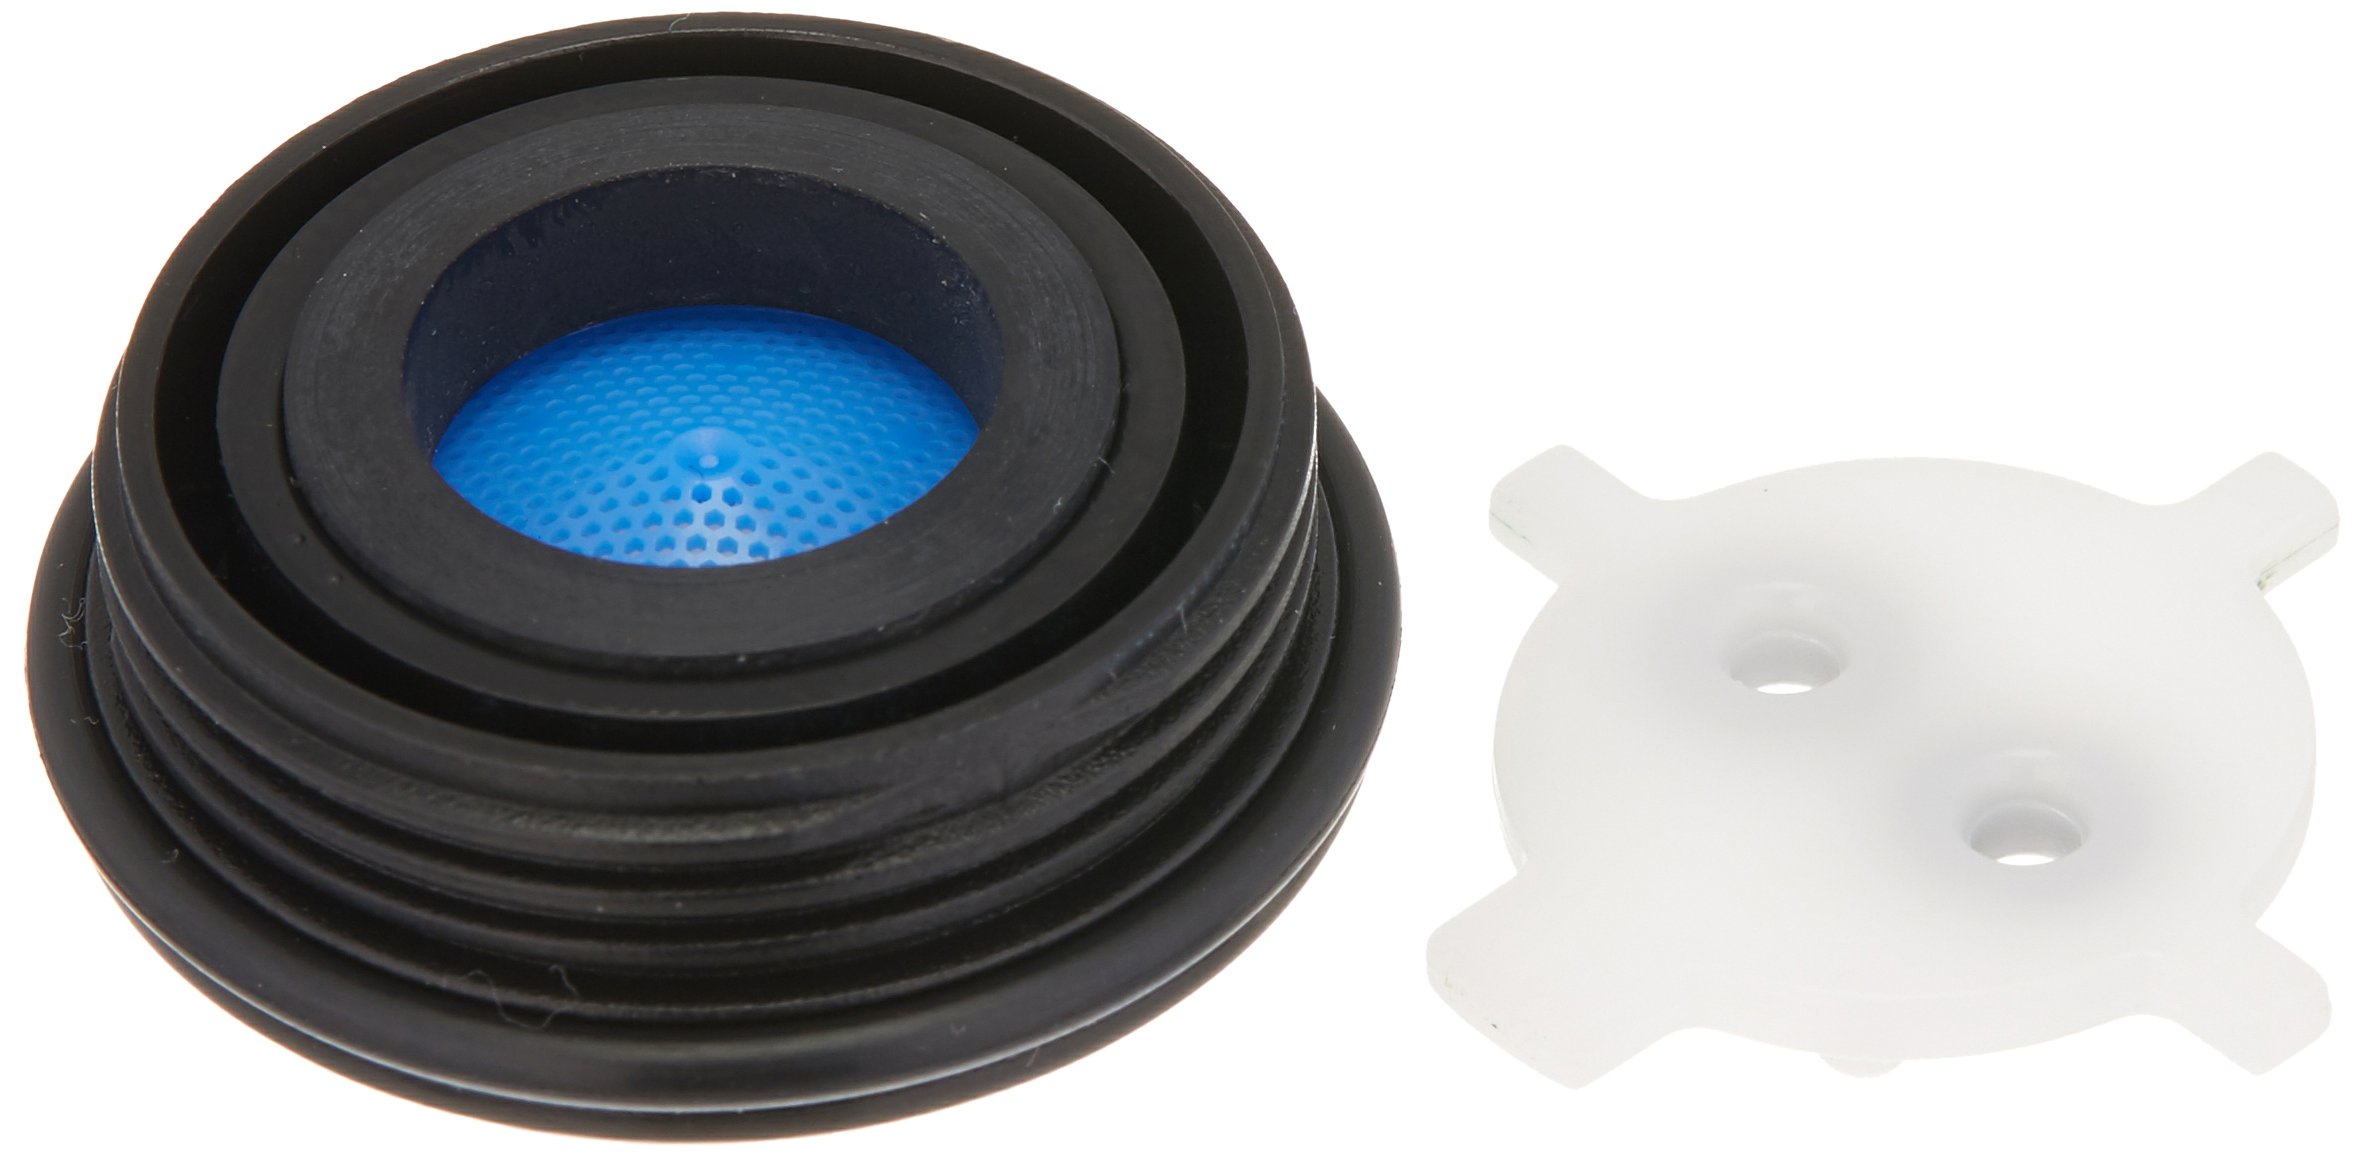 Pfister 9500980 Replacement Part